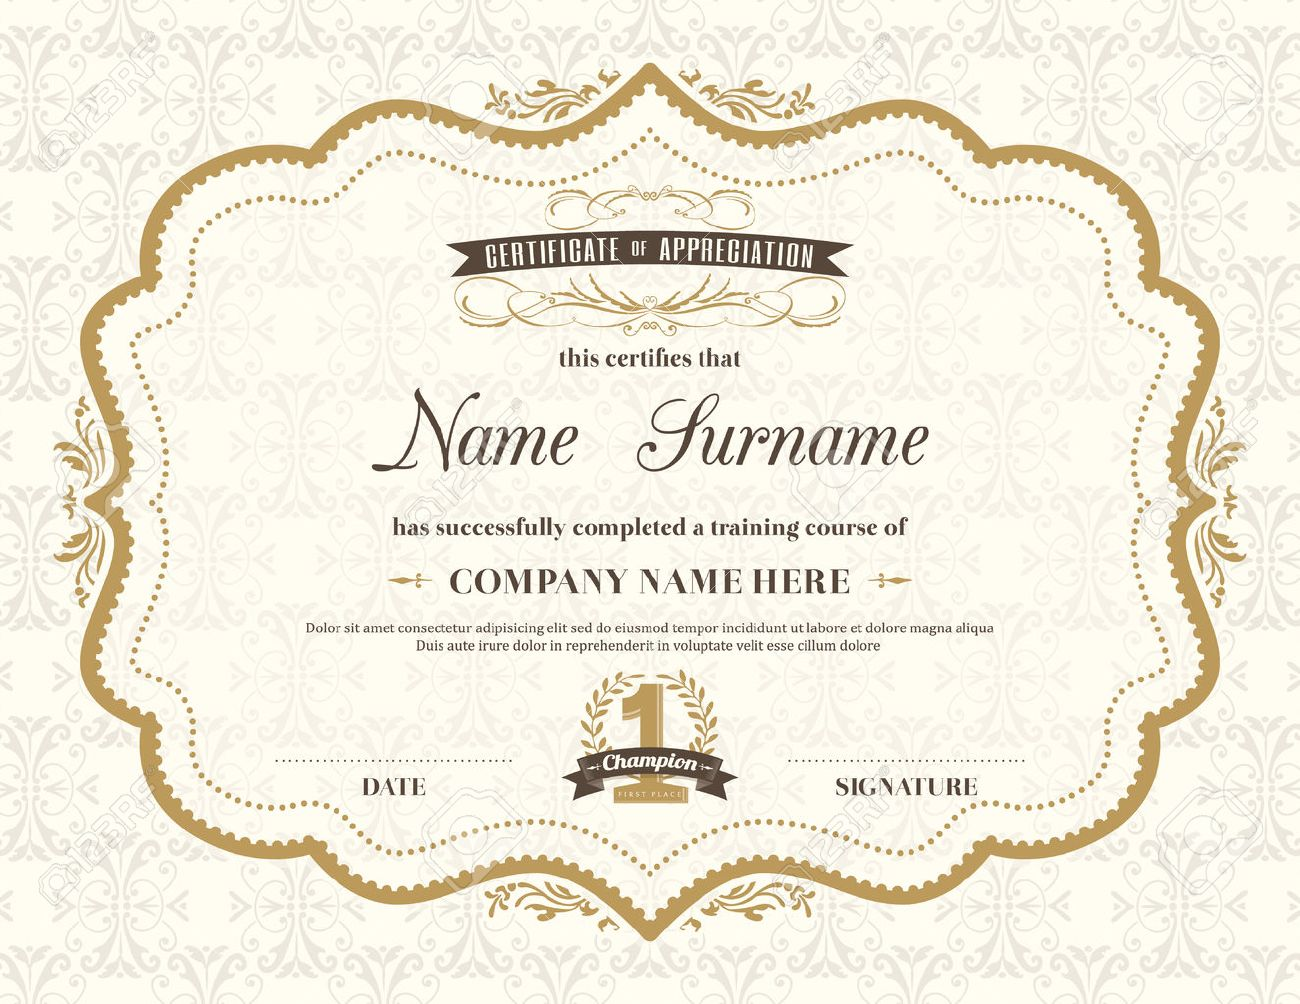 vintage retro frame certificate background design template royalty